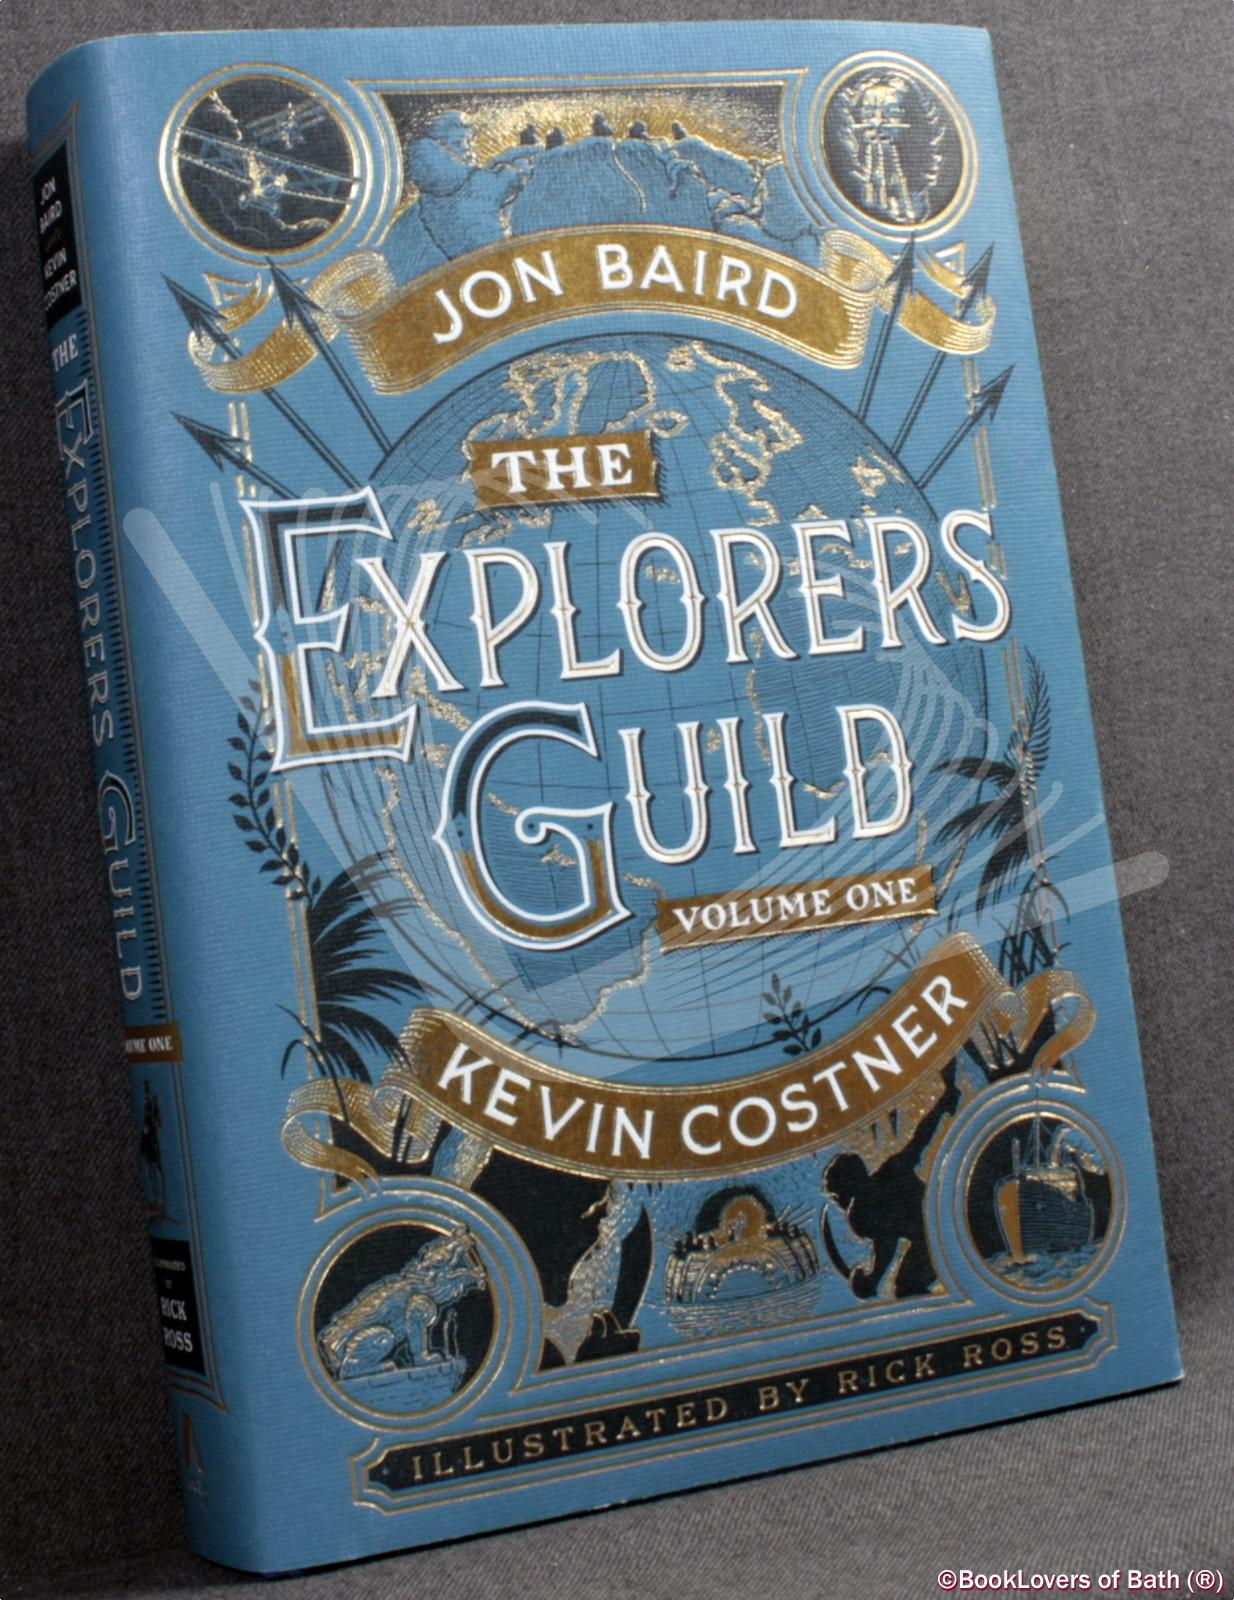 The Explorers Guild Volume One: A Passage to Shambhala - Jon Baird, with Kevin Costner & Stephen Meyer